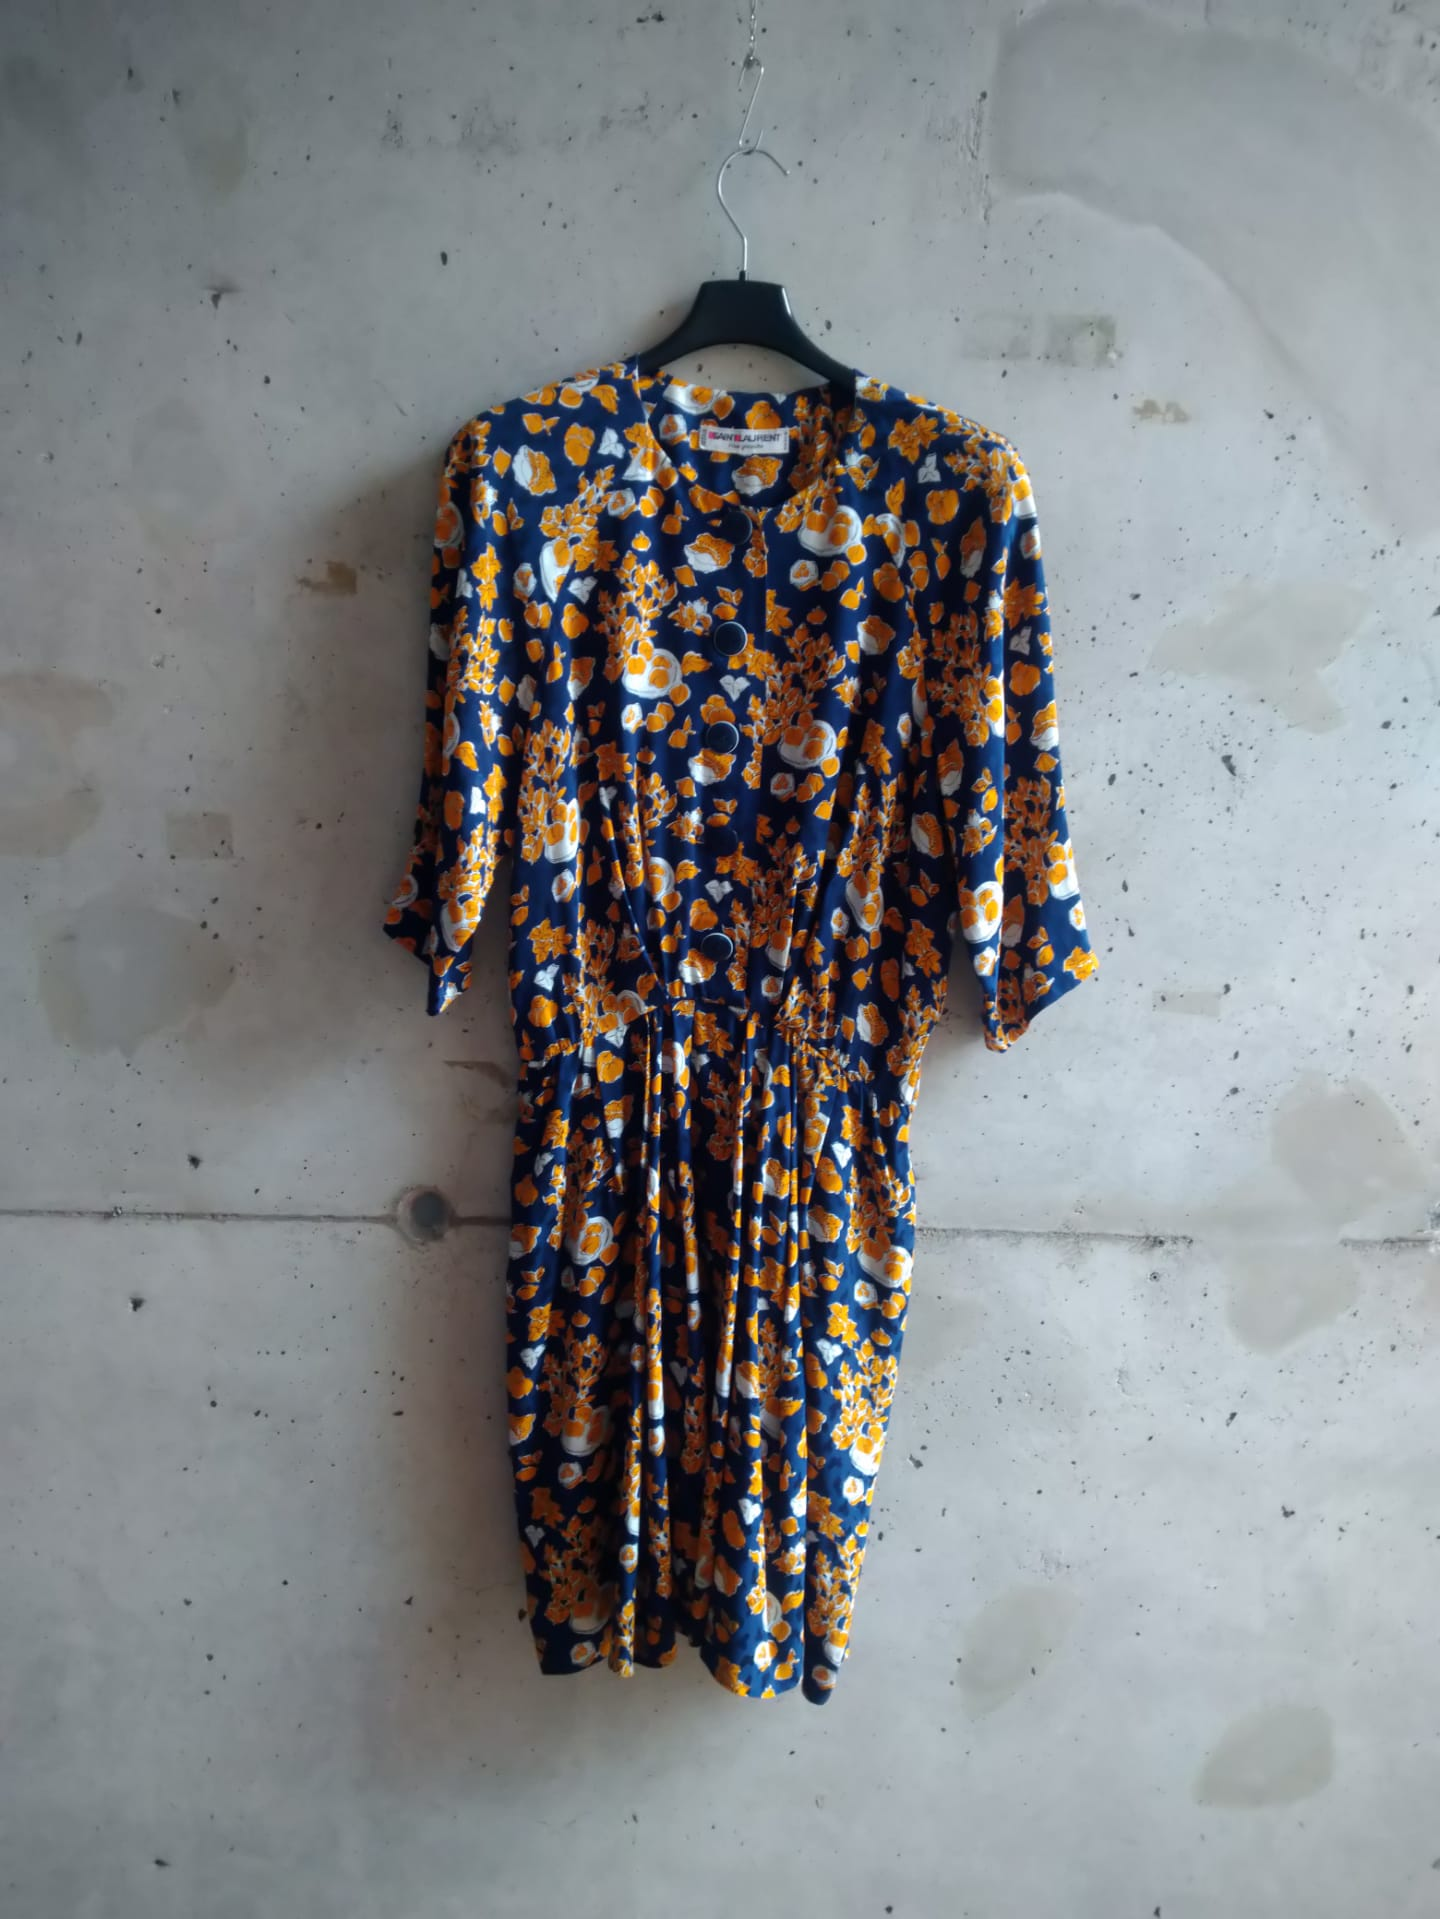 Yves Saint Laurent silk dress with a print of fruits and foliage